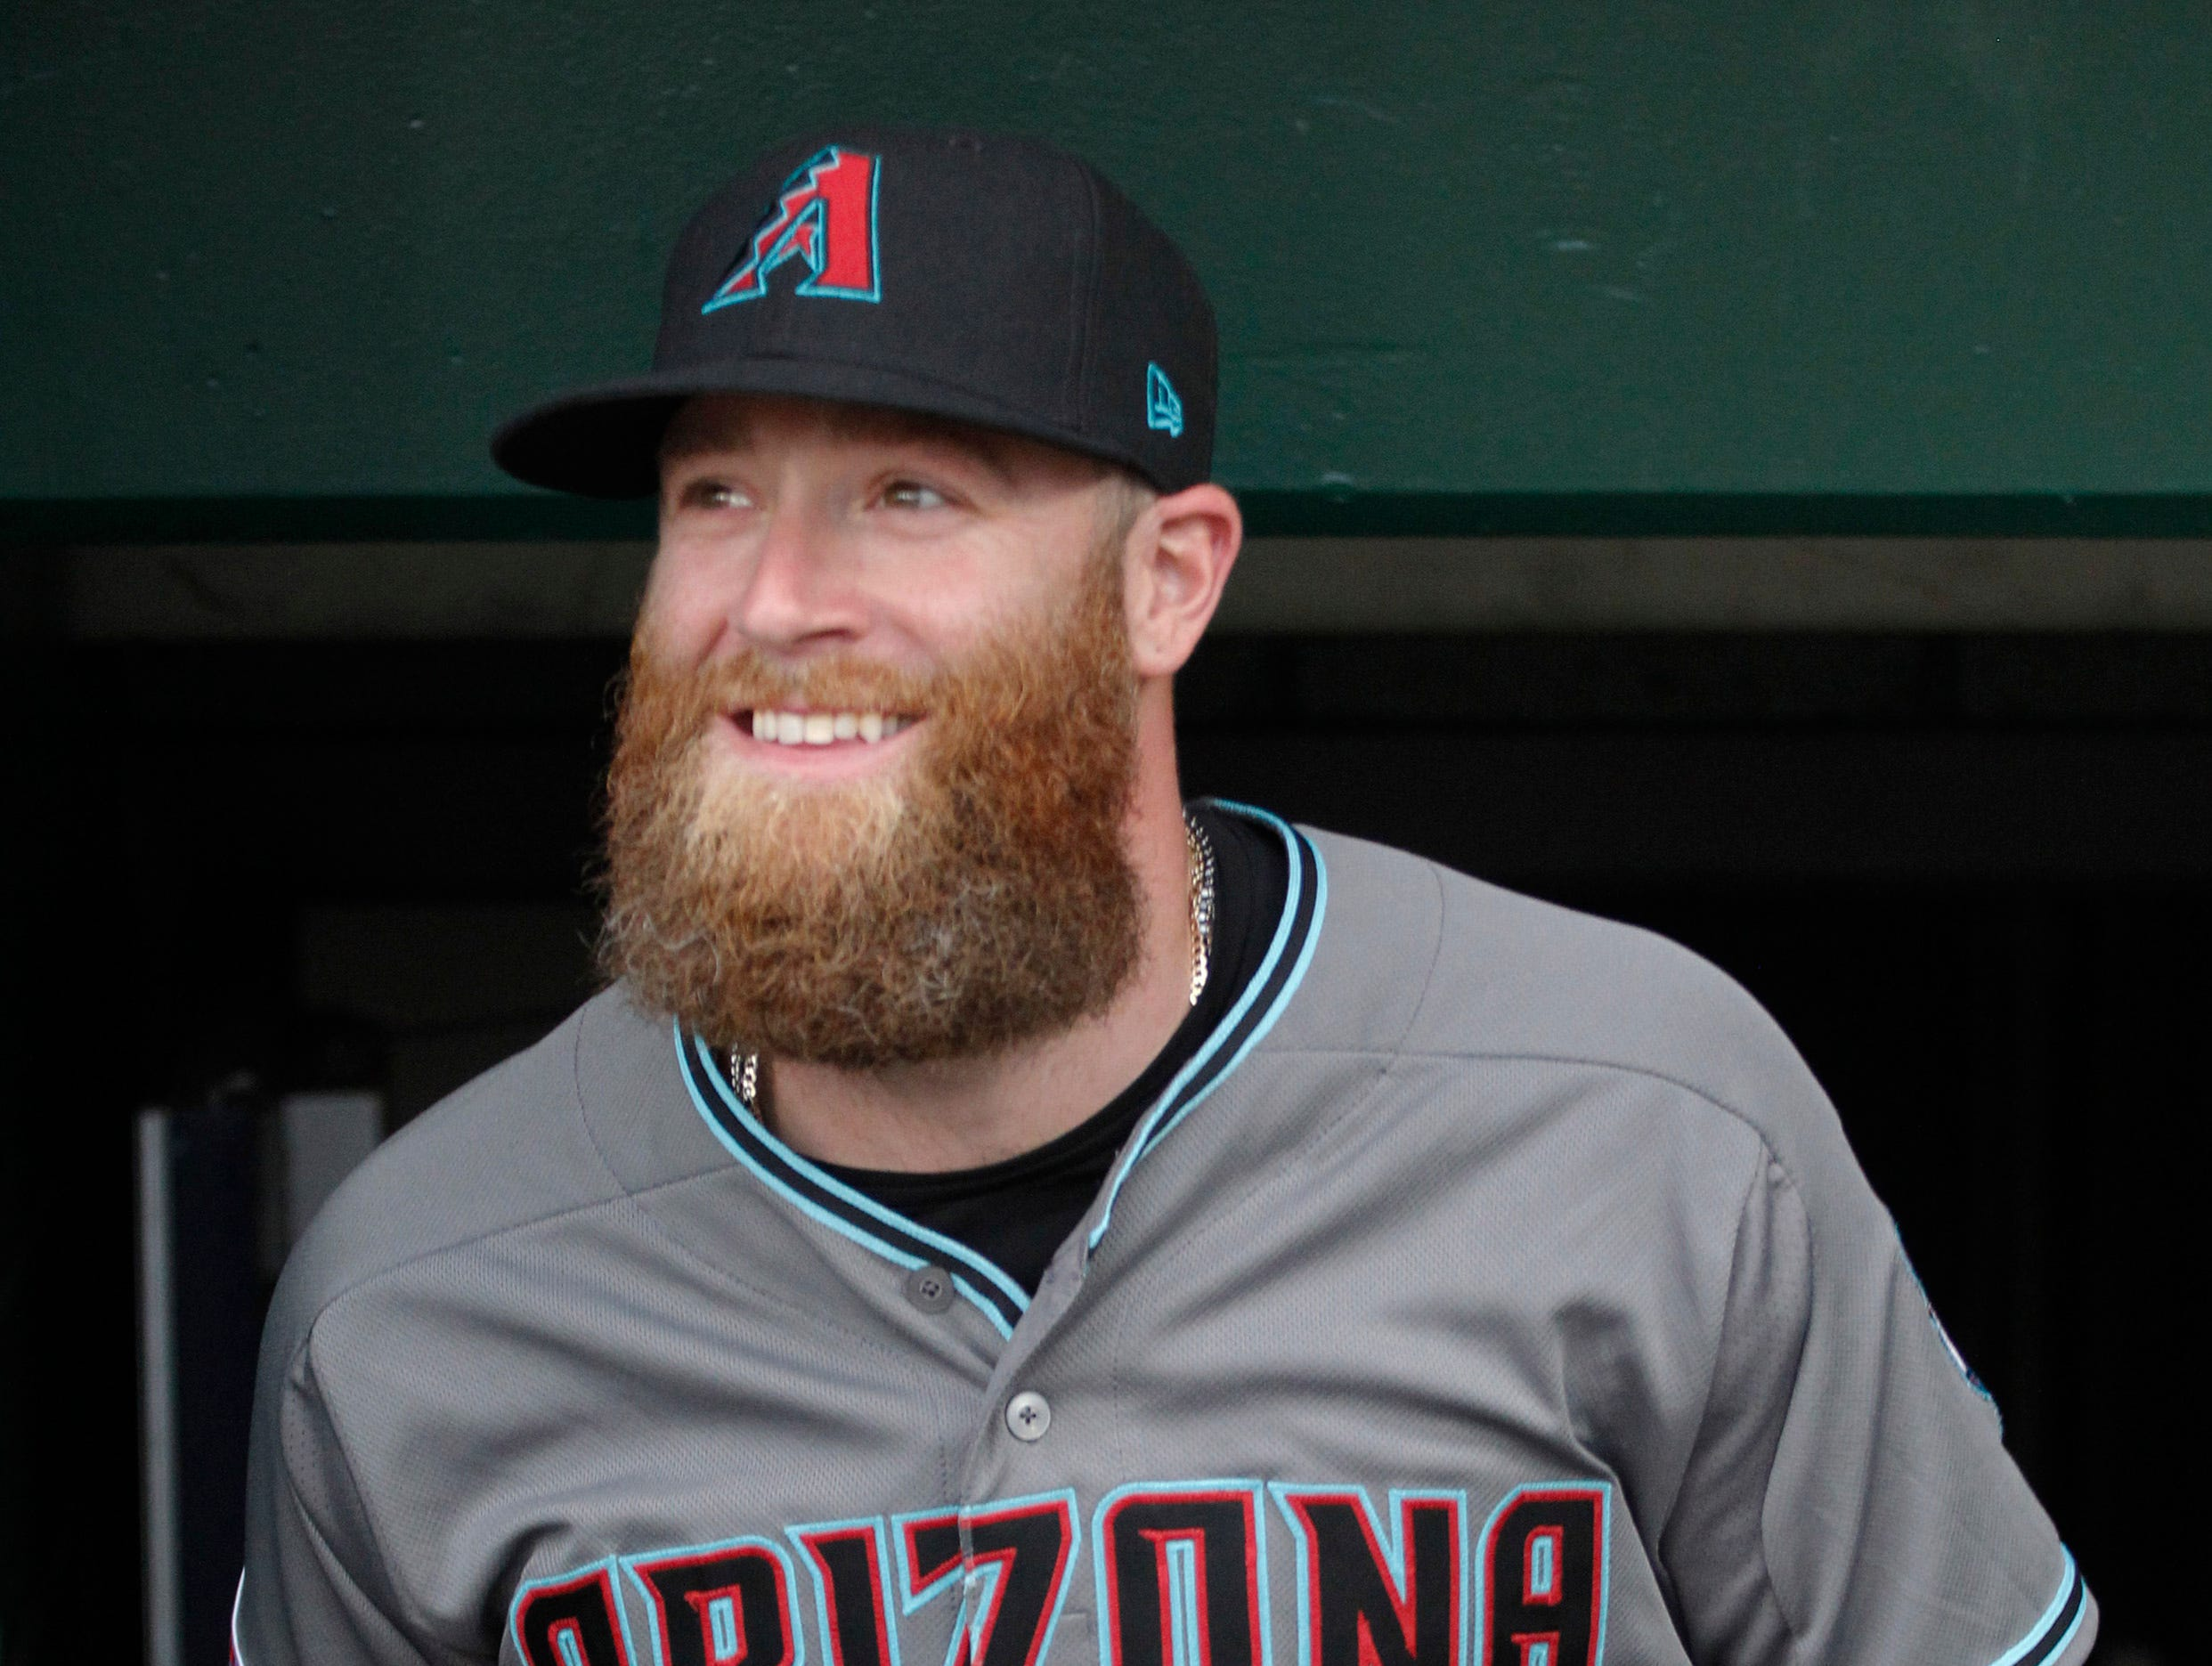 Apr 23, 2019; Pittsburgh, PA, USA;  Arizona Diamondbacks relief pitcher Archie Bradley (25) smiles as he enters the dugout to play the Pittsburgh Pirates at PNC Park. Mandatory Credit: Charles LeClaire-USA TODAY Sports